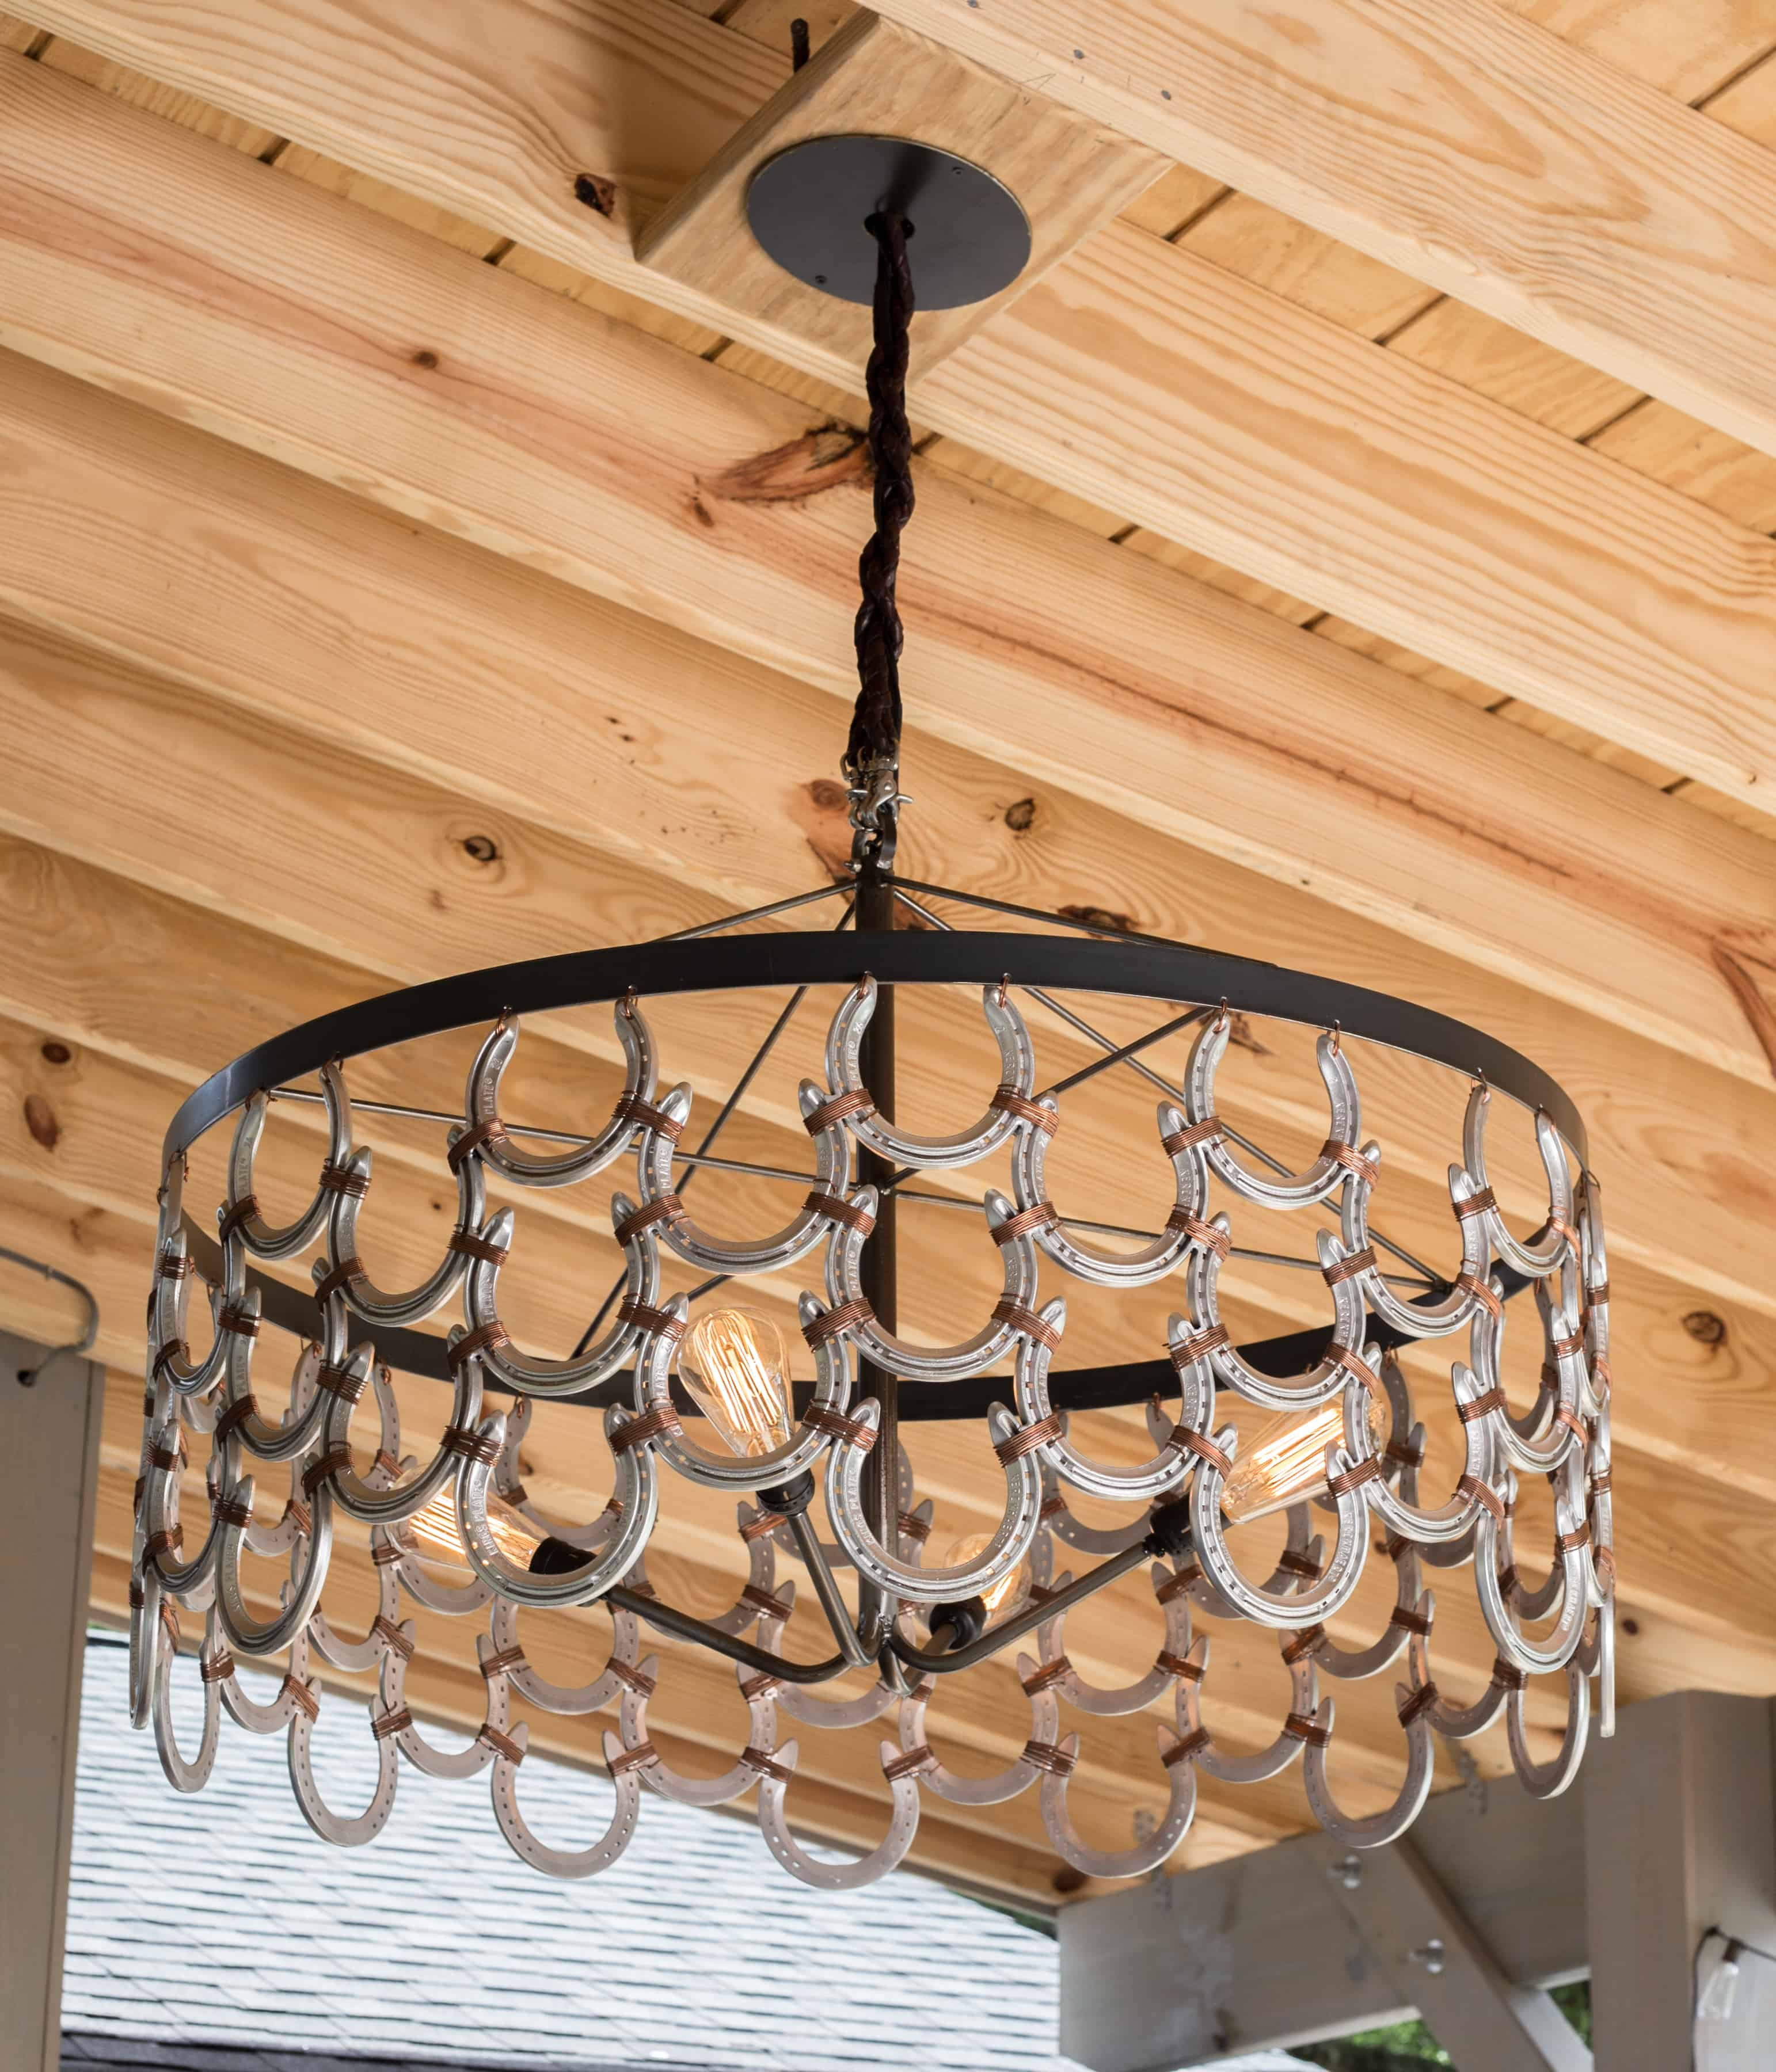 Get creative with your horseshoe design. The idea is horseshoes are easy to decorate with while still bringing luck and positivity into the home.